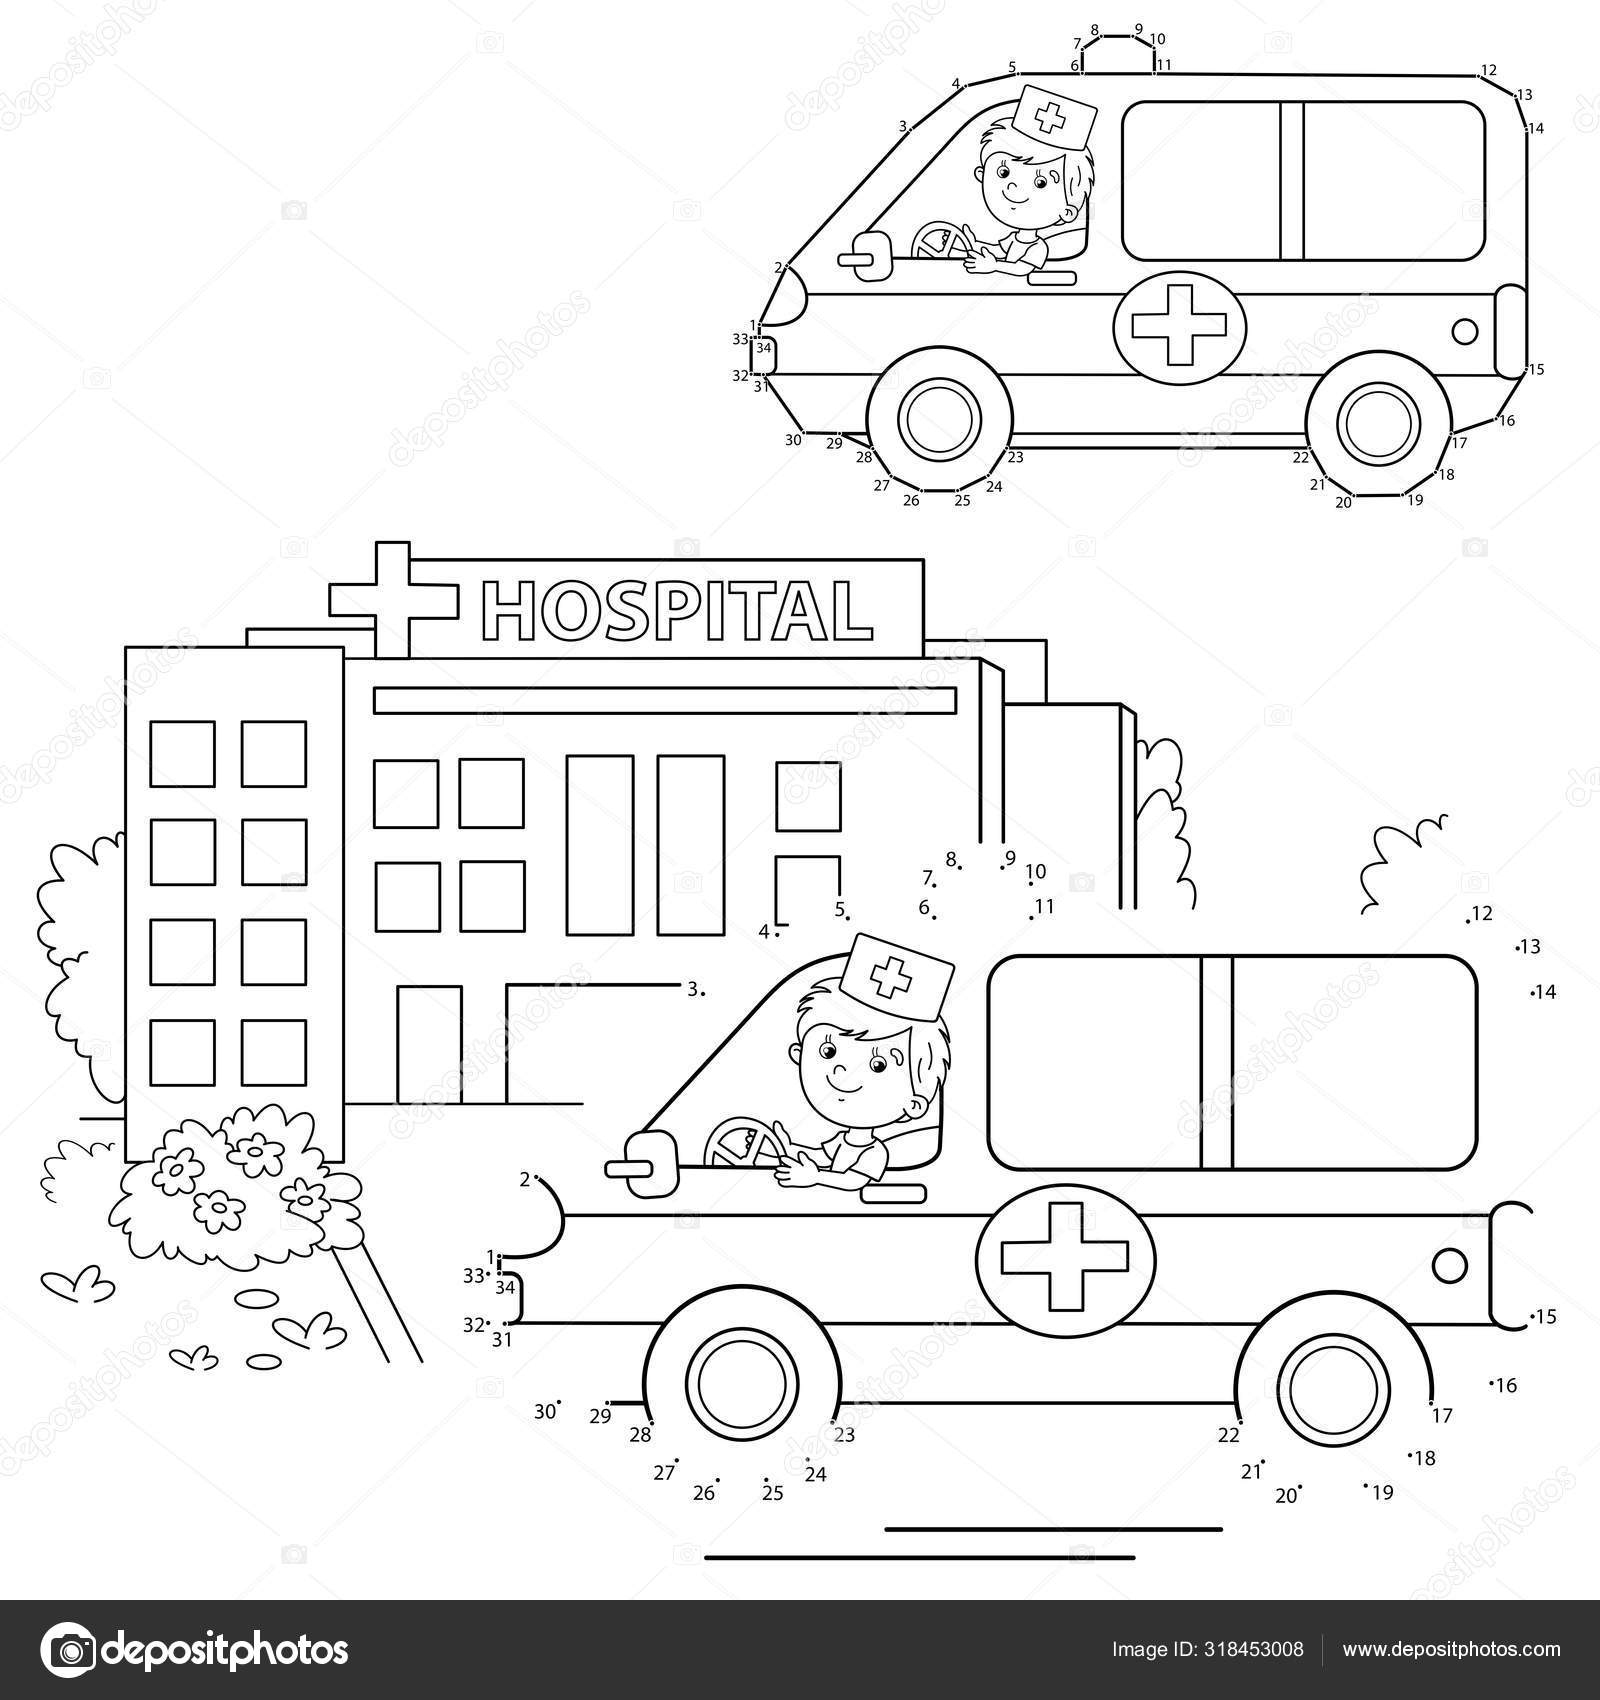 Educational Puzzle Game For Kids Numbers Game Ambulance Car Coloring Page Outline Of Cartoon Doctor With Ambulance Car Near The Hospital Coloring Book For Children Vector Image By C Oleon17